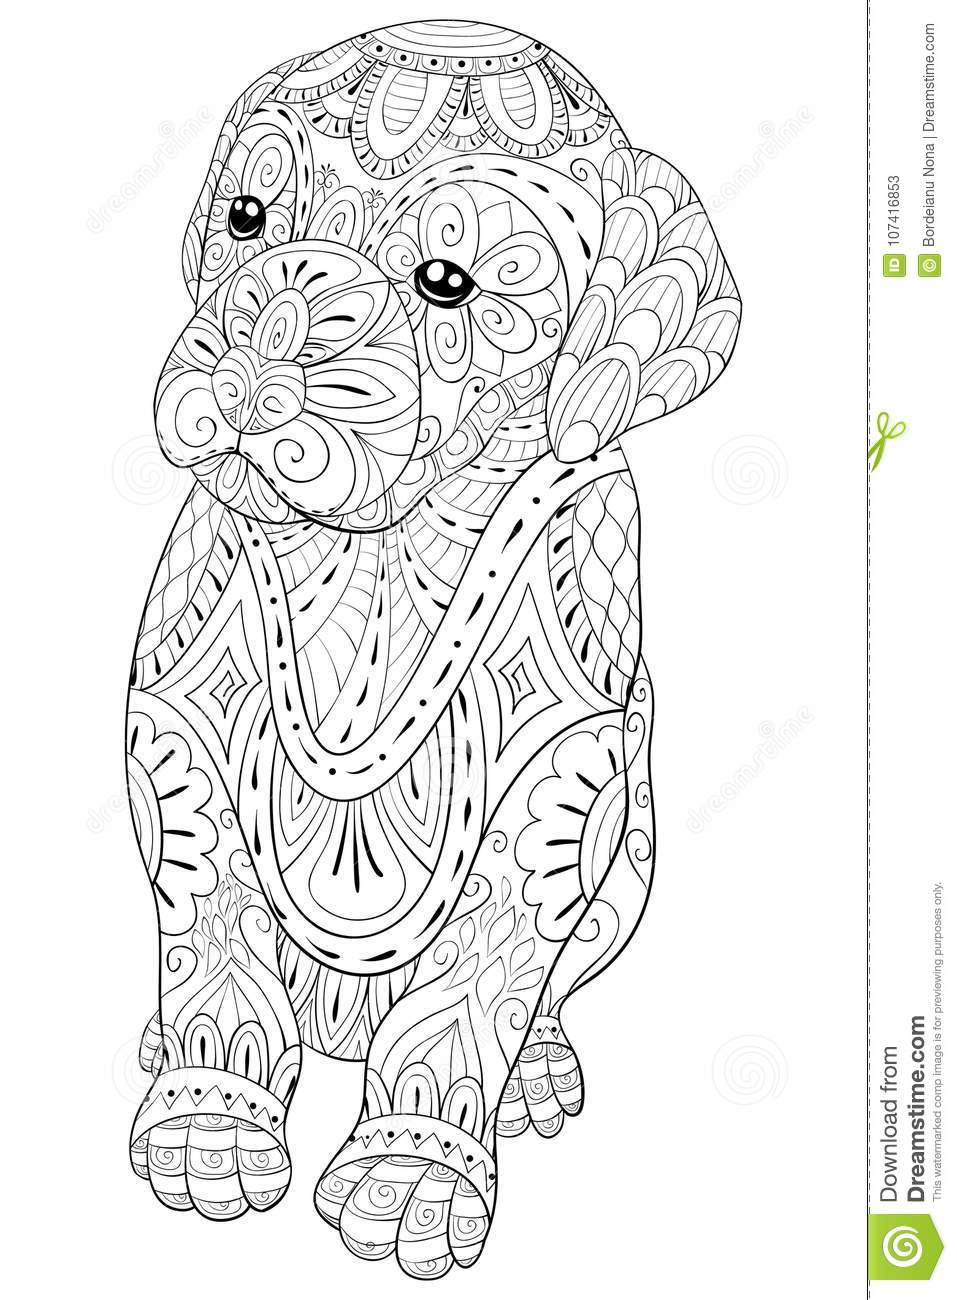 Adult Coloring Page A Cute Little